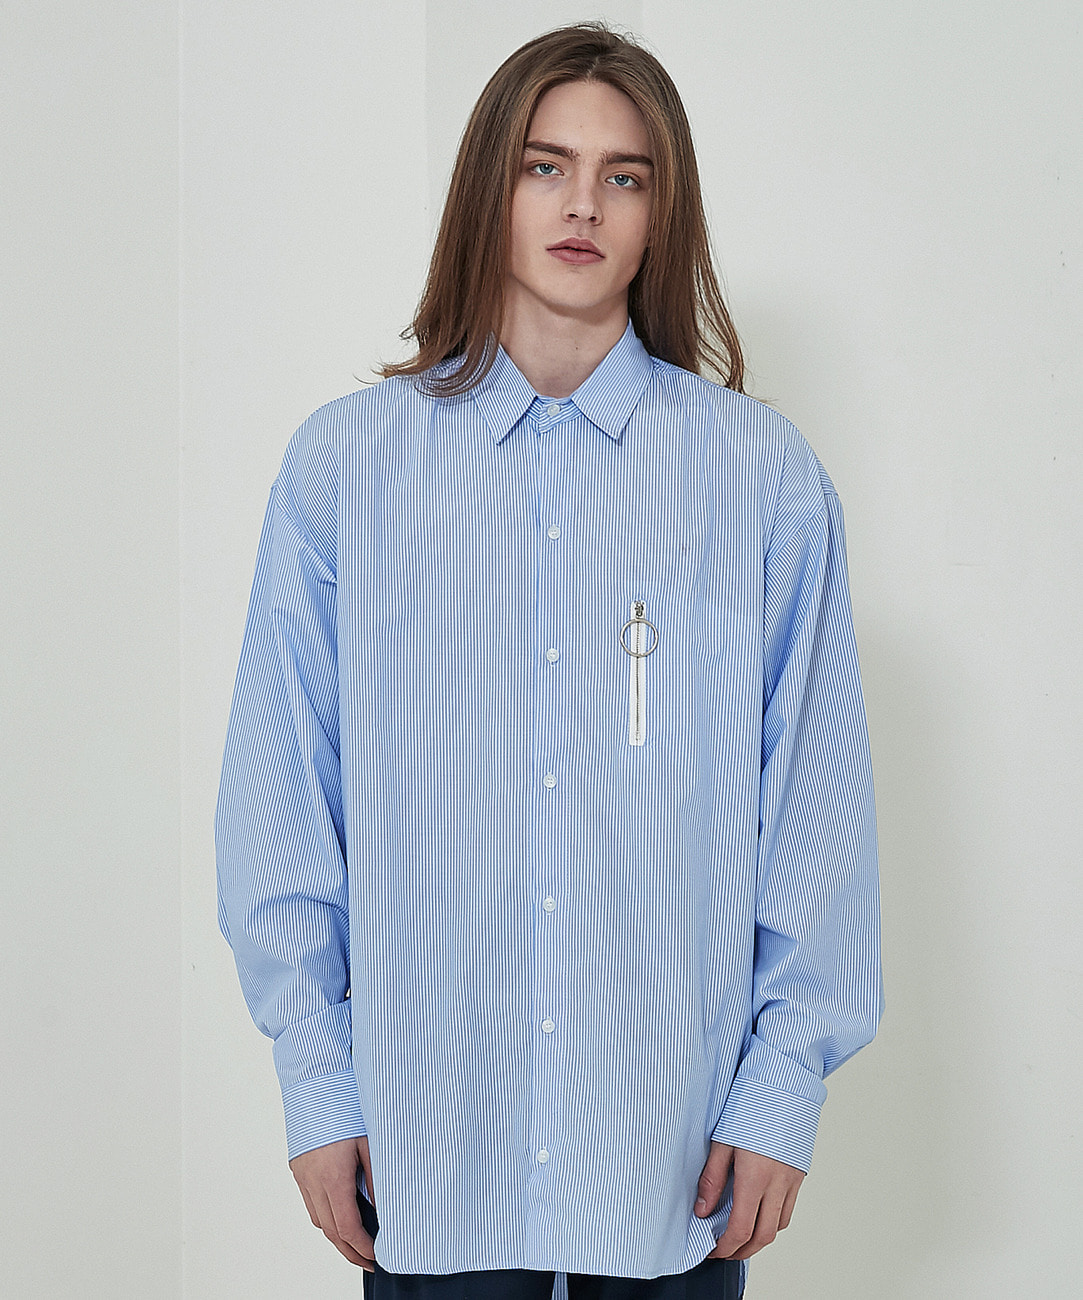 Round Zipper Stripe Shirts (Sky Blue)